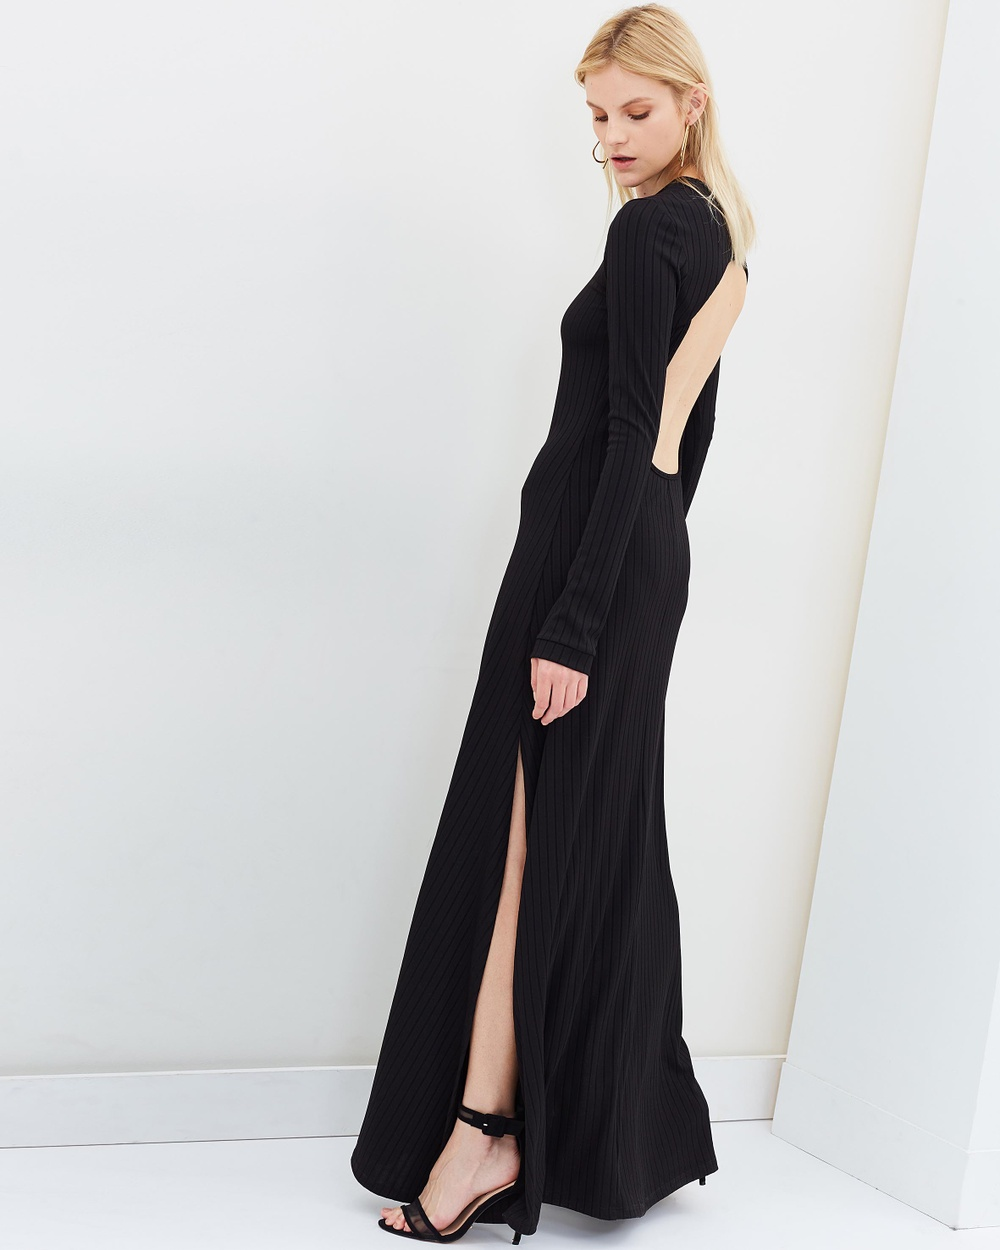 Michael Lo Sordo Backless Jersey Maxi Dress Dresses Black Backless Jersey Maxi Dress